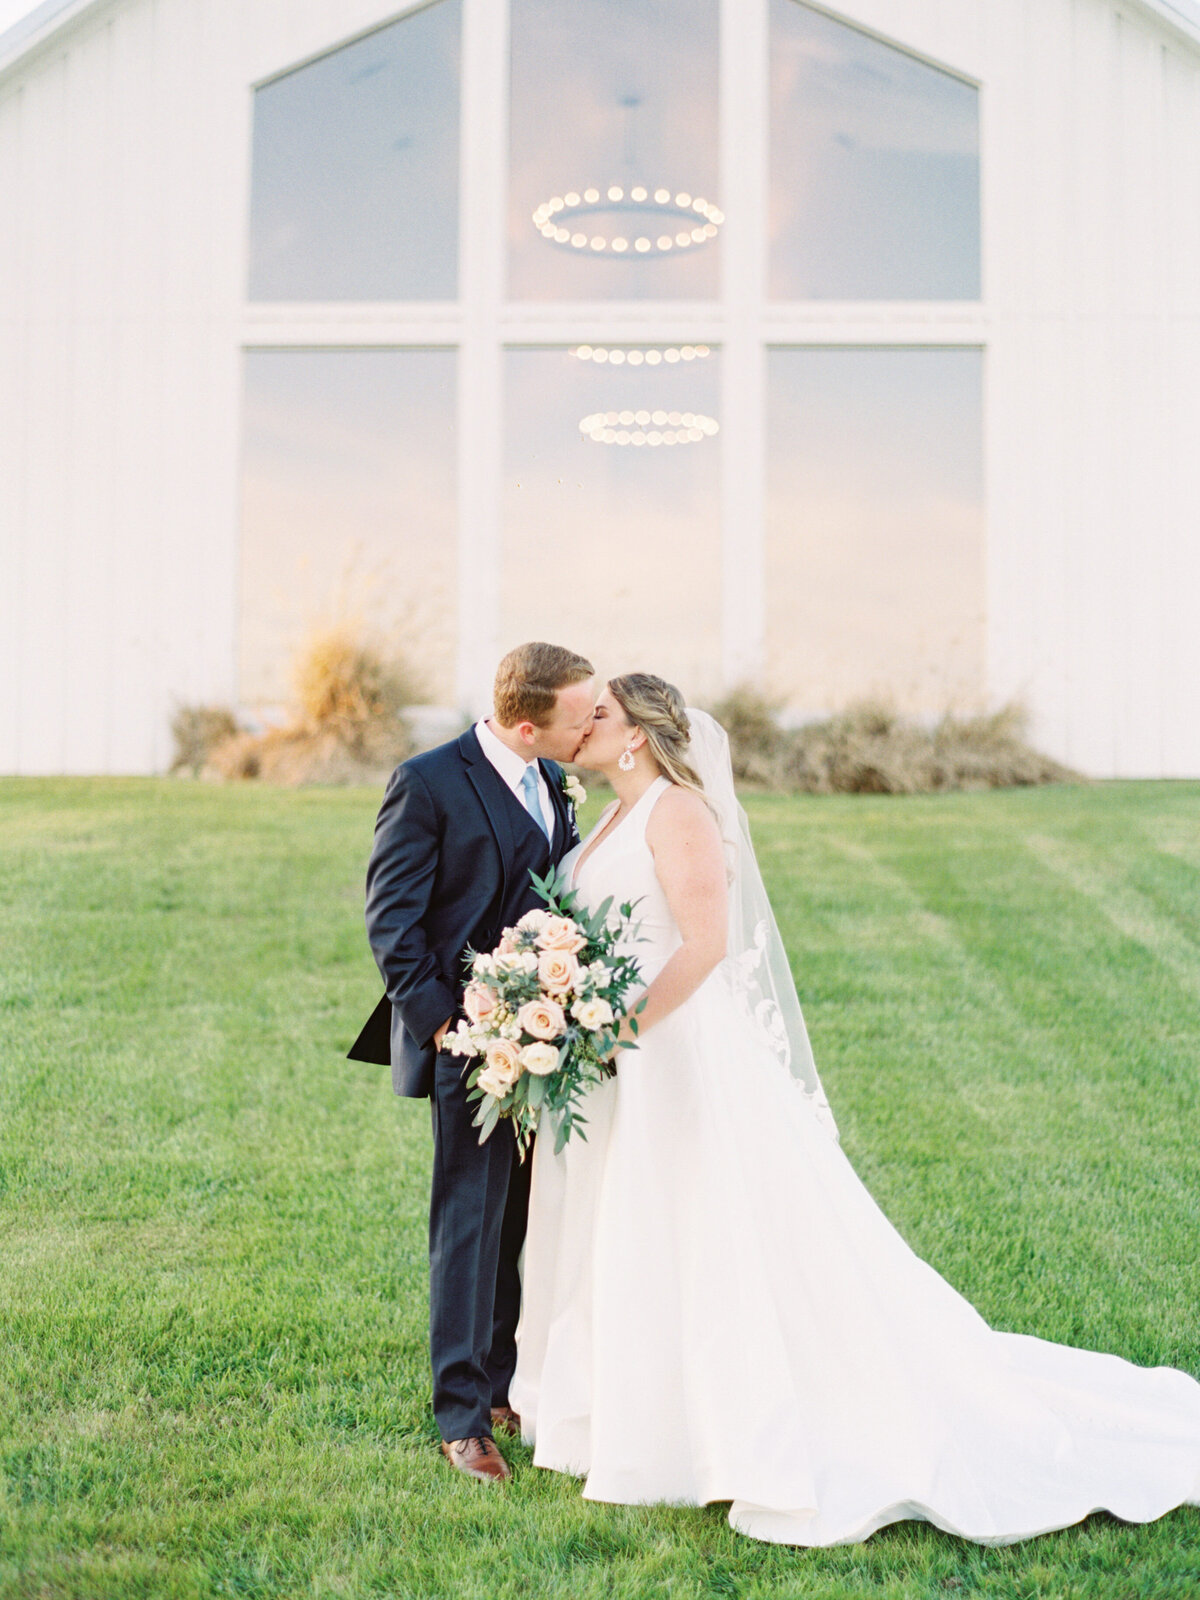 the-farmhouse-wedding-houston-texas-wedding-photographer-mackenzie-reiter-photography-6